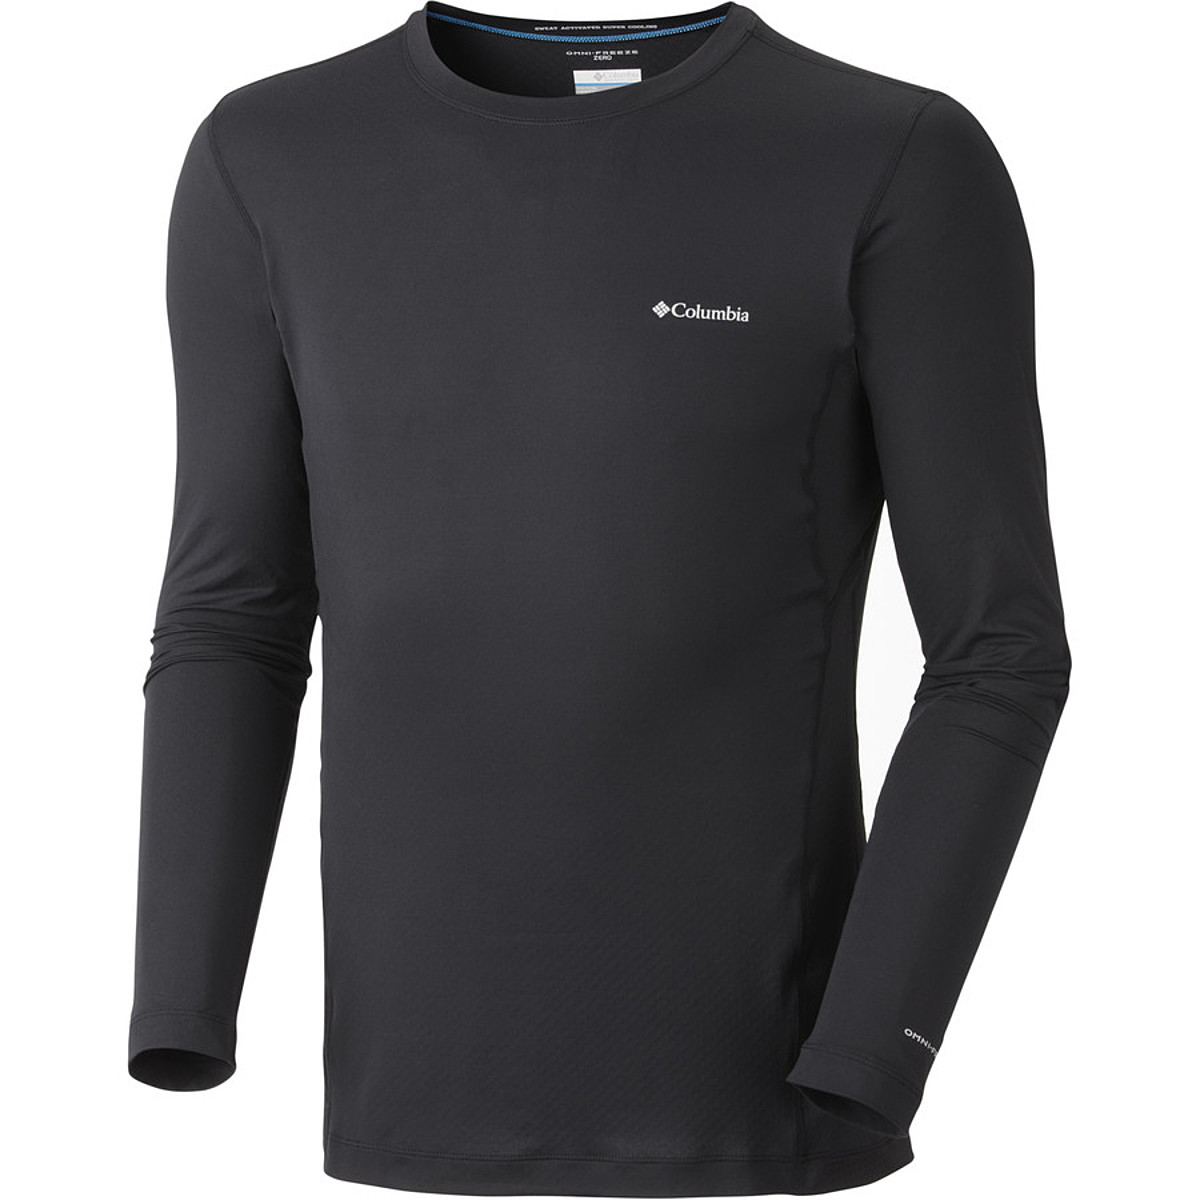 Columbia Coolest Cool Long Sleeve Top